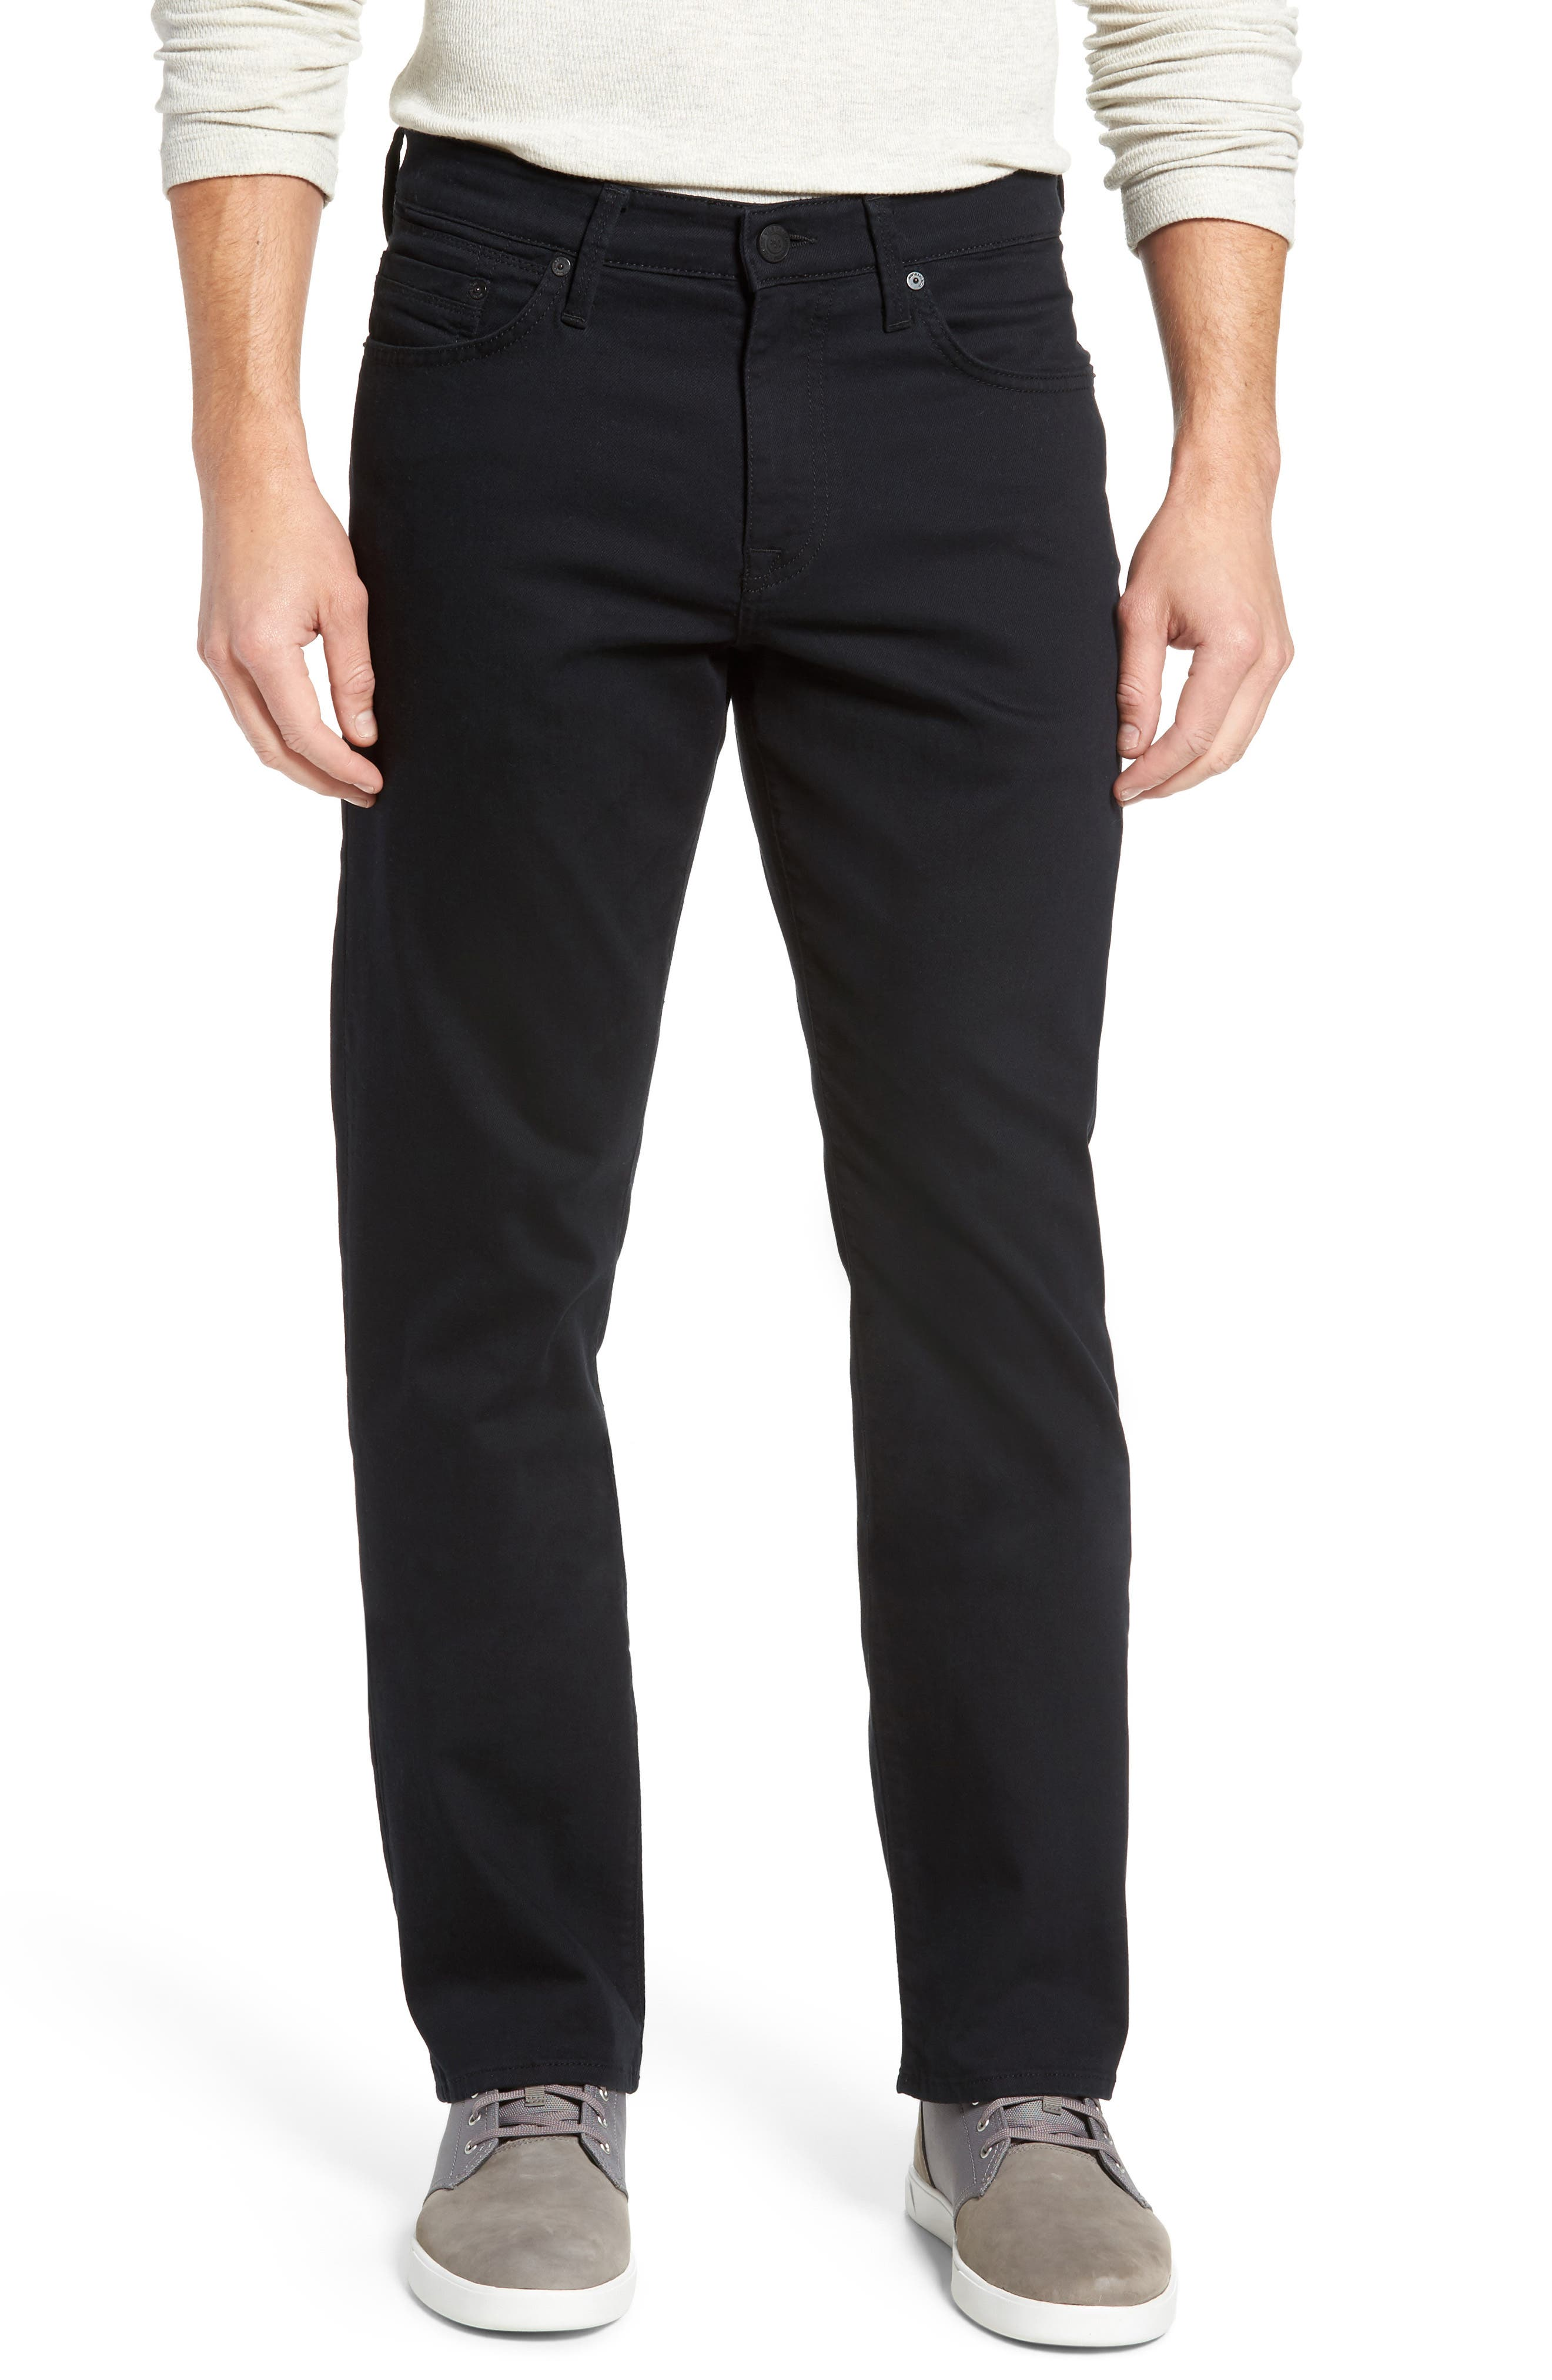 Matt Relaxed Fit Jeans,                             Main thumbnail 1, color,                             Black Williamsburg